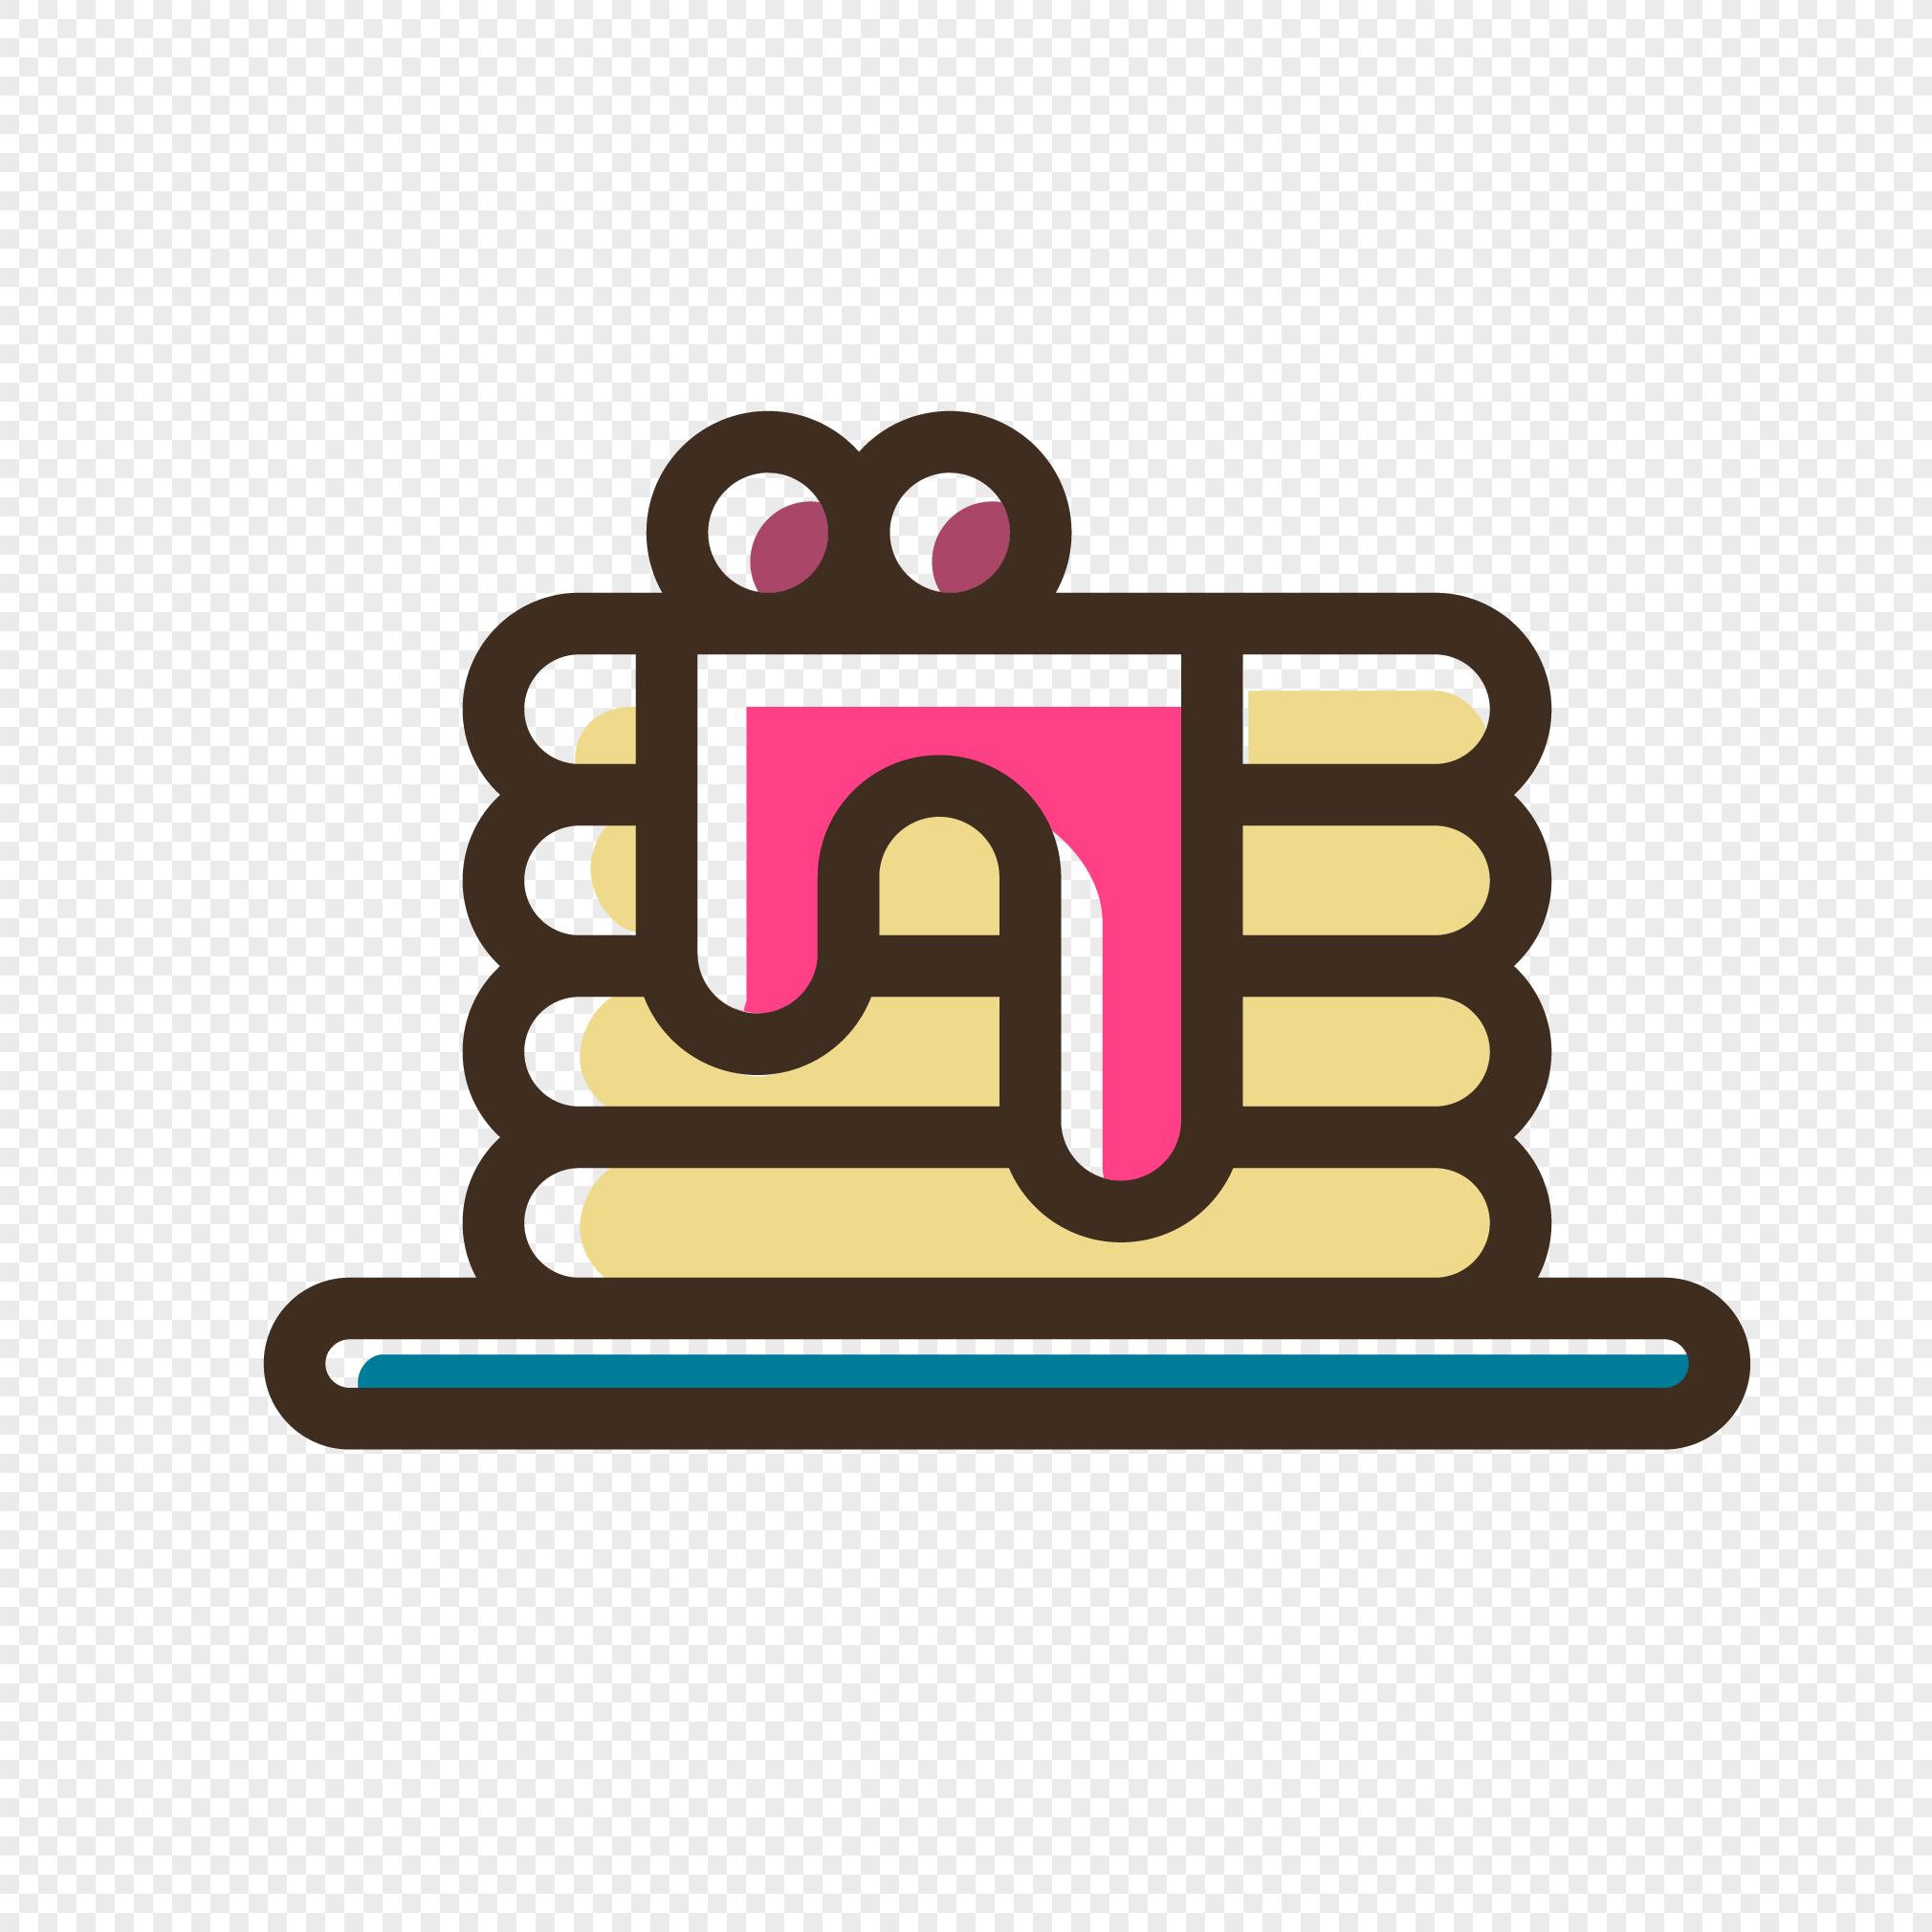 Small Cartoon Birthday Cake Design Vector Icon Png Image Picture